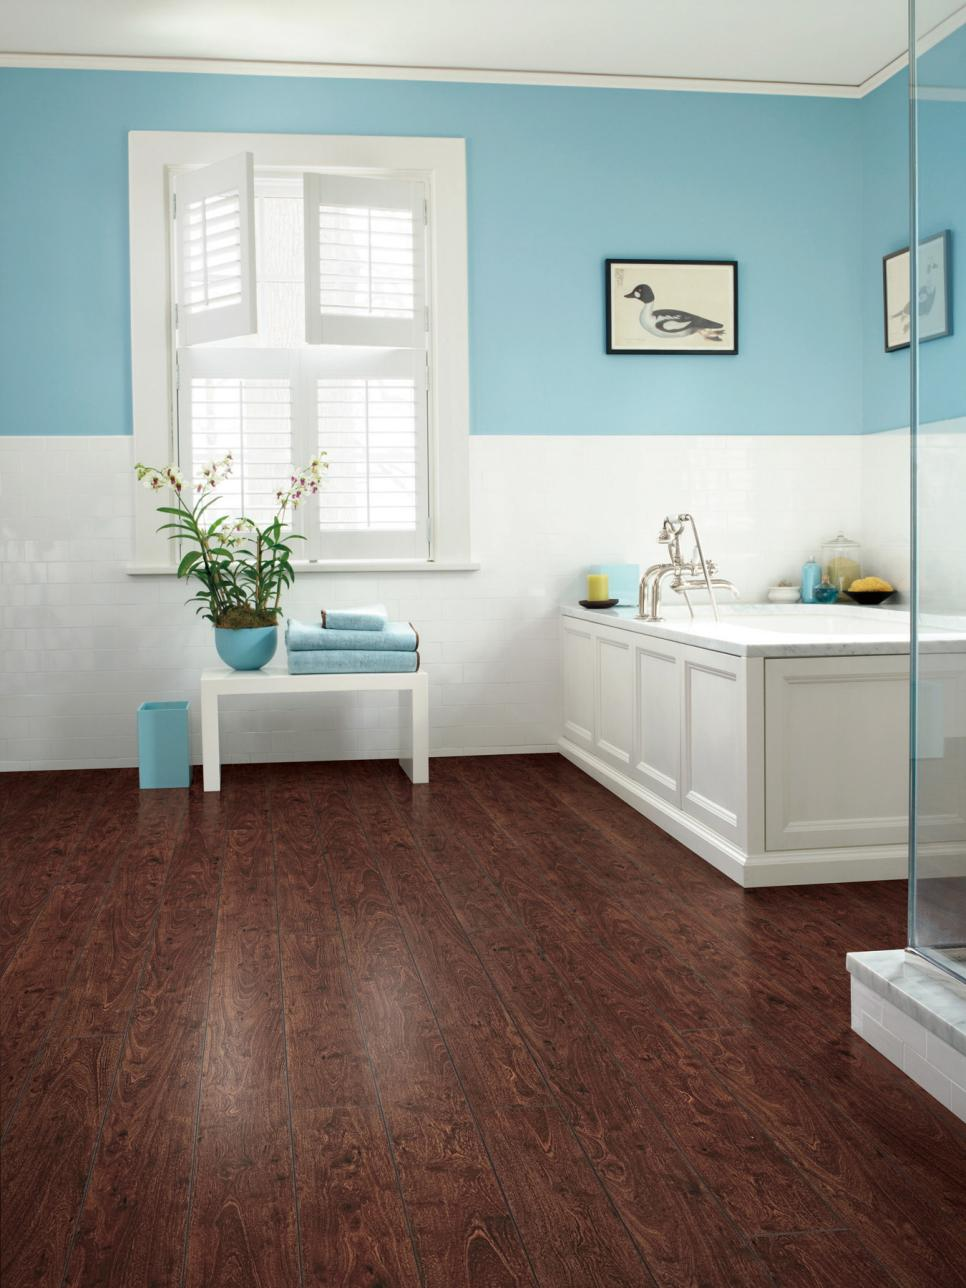 Laminate bathroom floors hgtv - Laminate tiles for bathroom walls ...